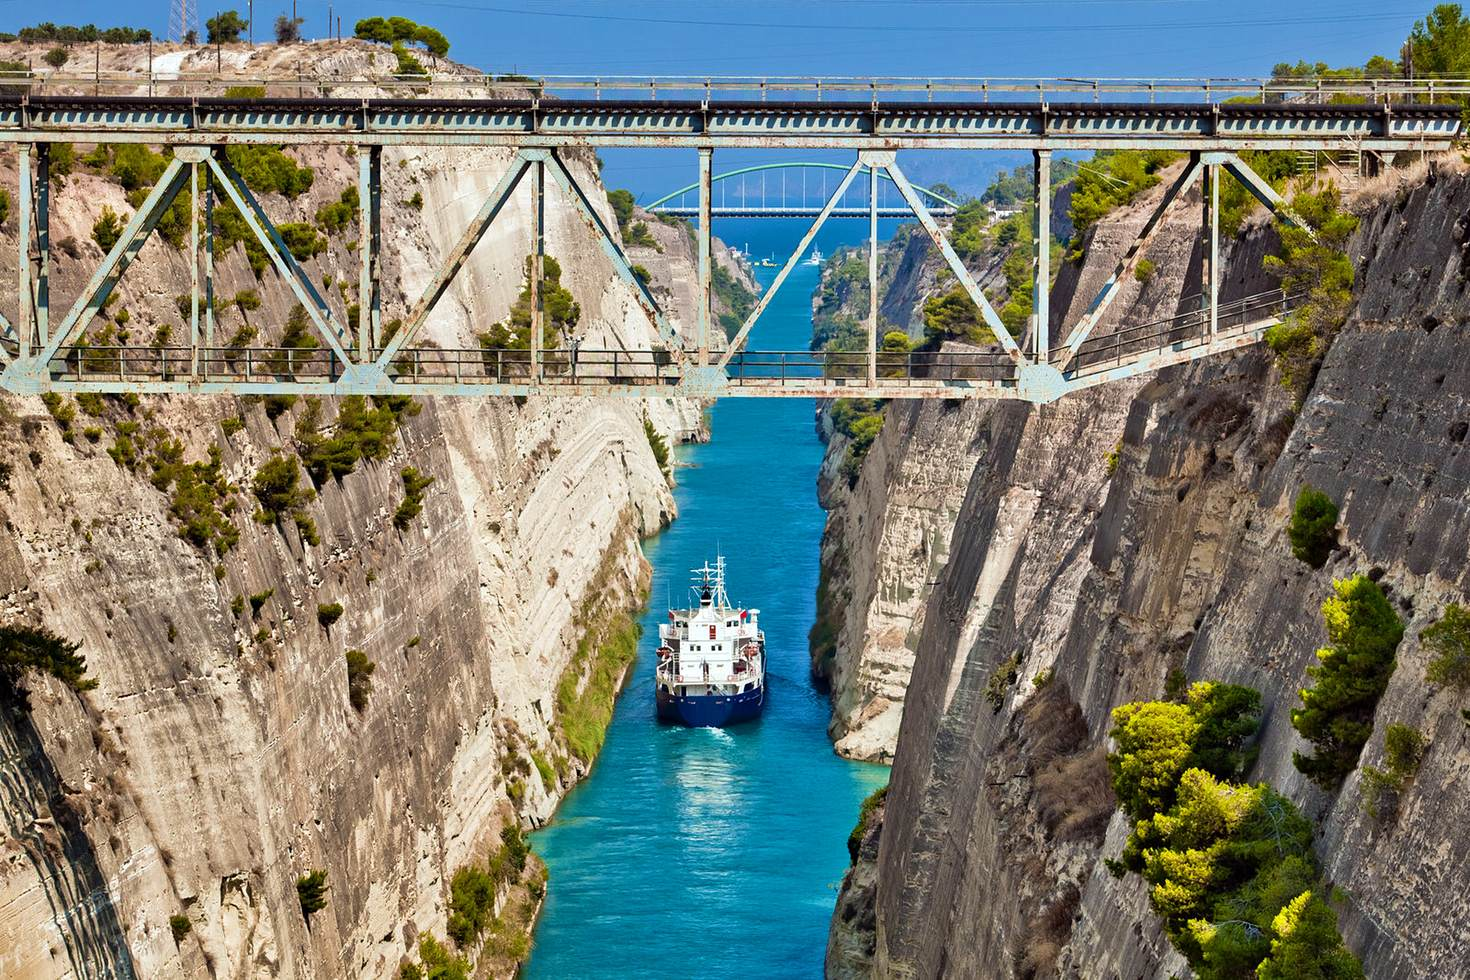 Cross the Corinth Canal to the Nemea wine region